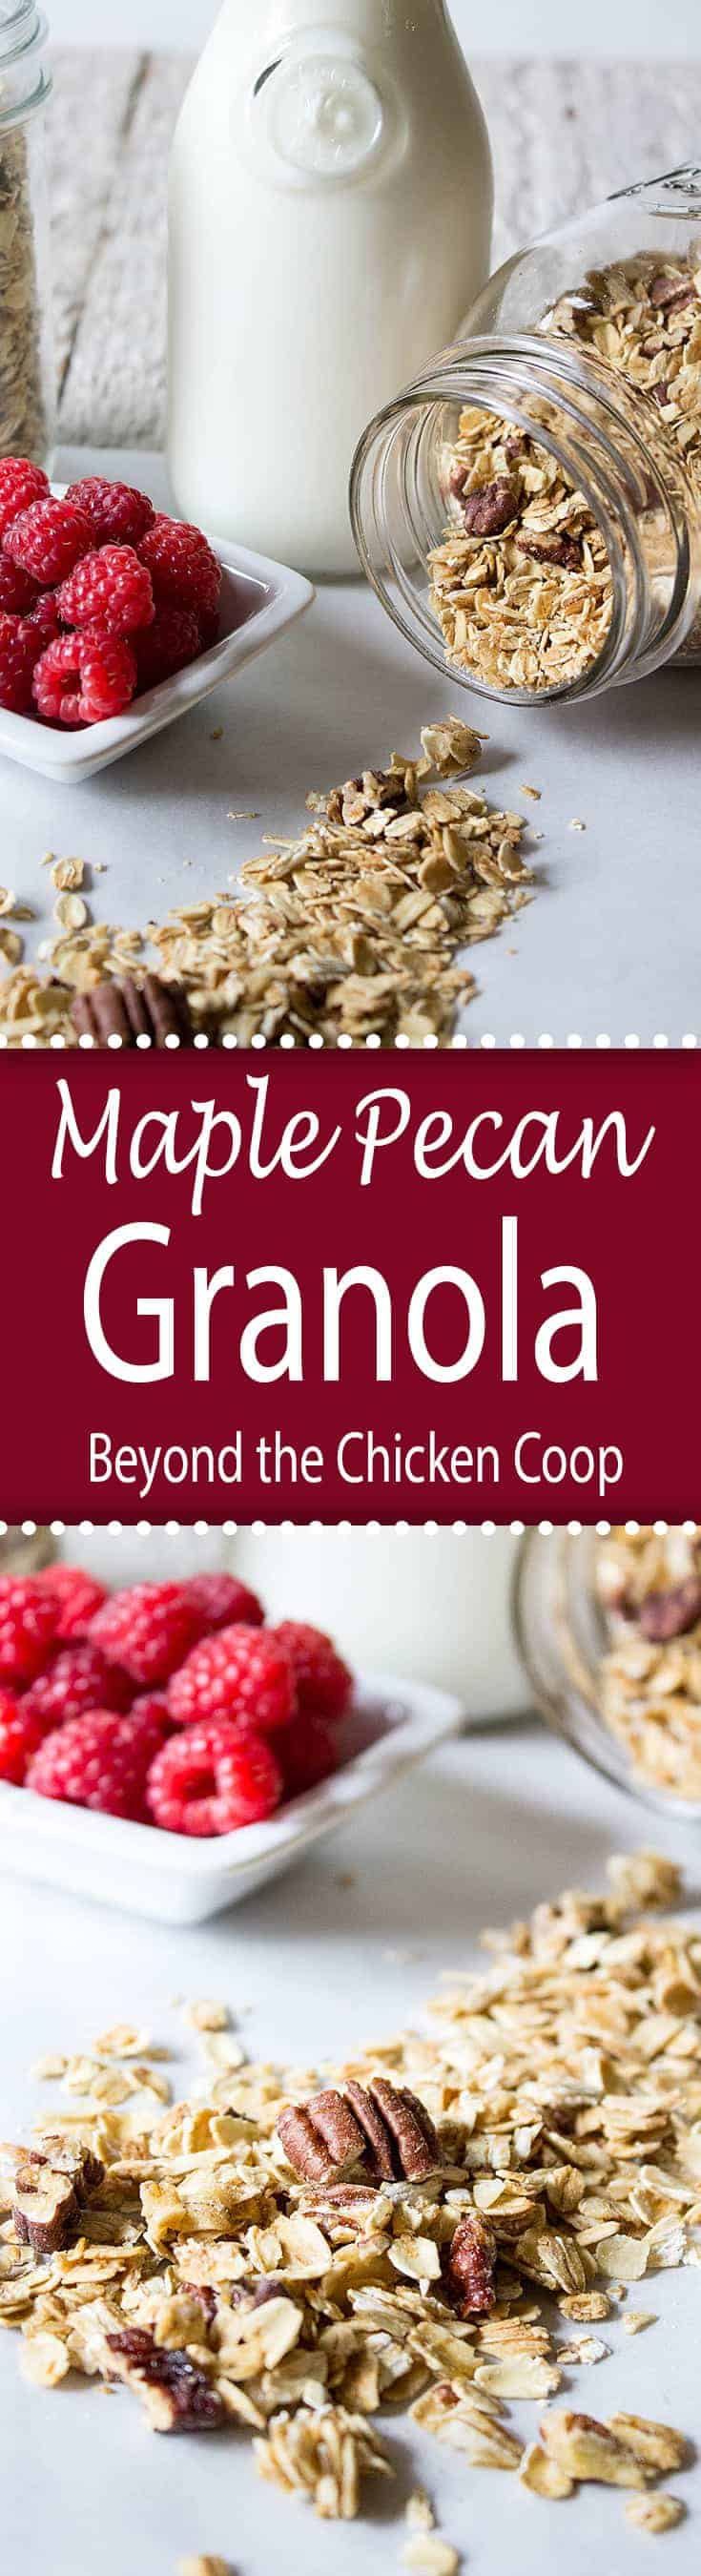 Homemade granola sweetened slightly with maple syrup. Perfect for breakfast or snacking.